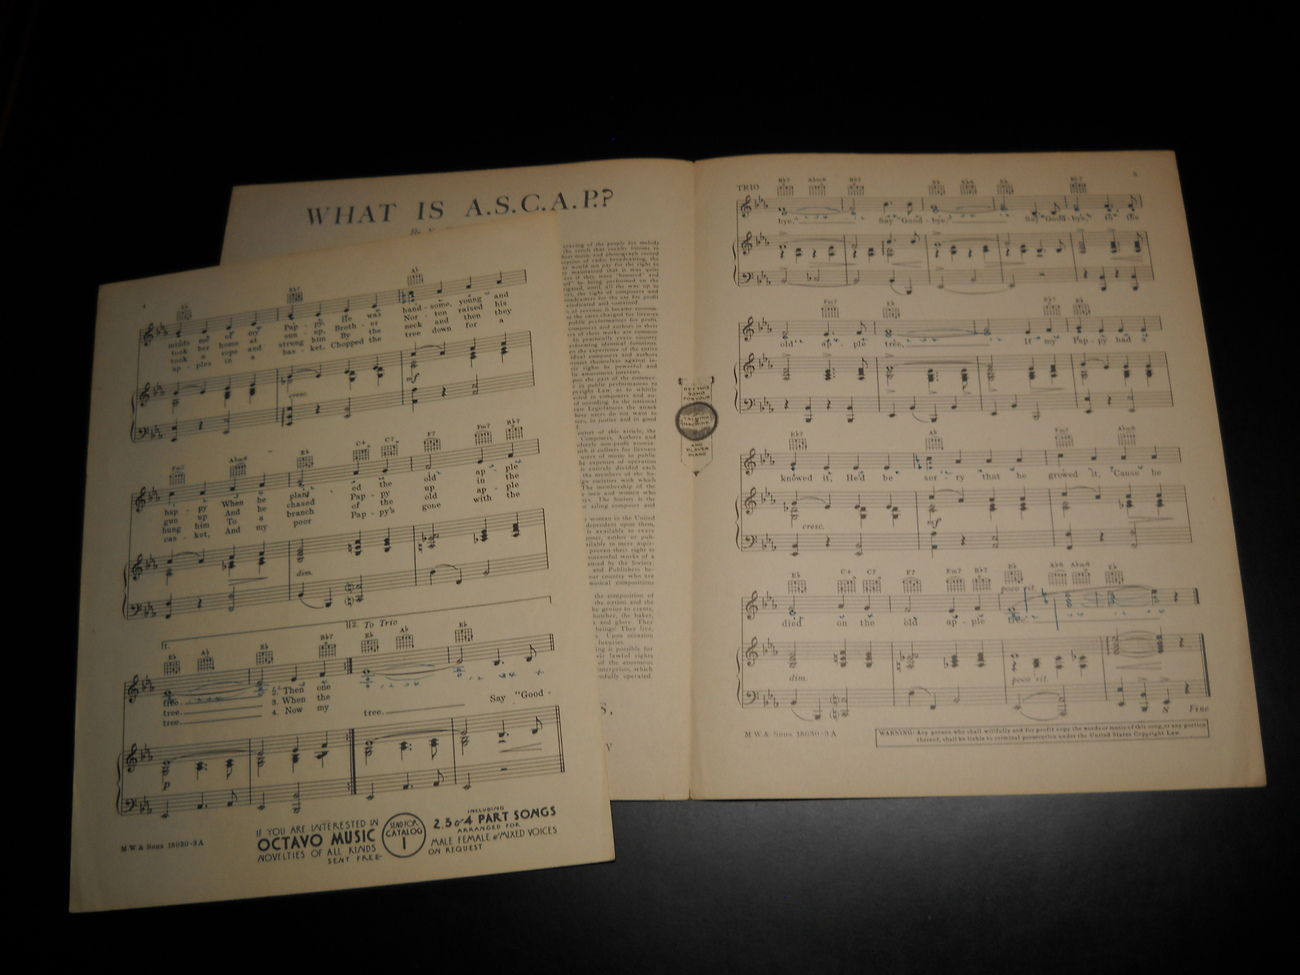 Sheet_music_the_old_apple_tree_swing_your_lady_humphrey_bogart_1938_m_witmark_07